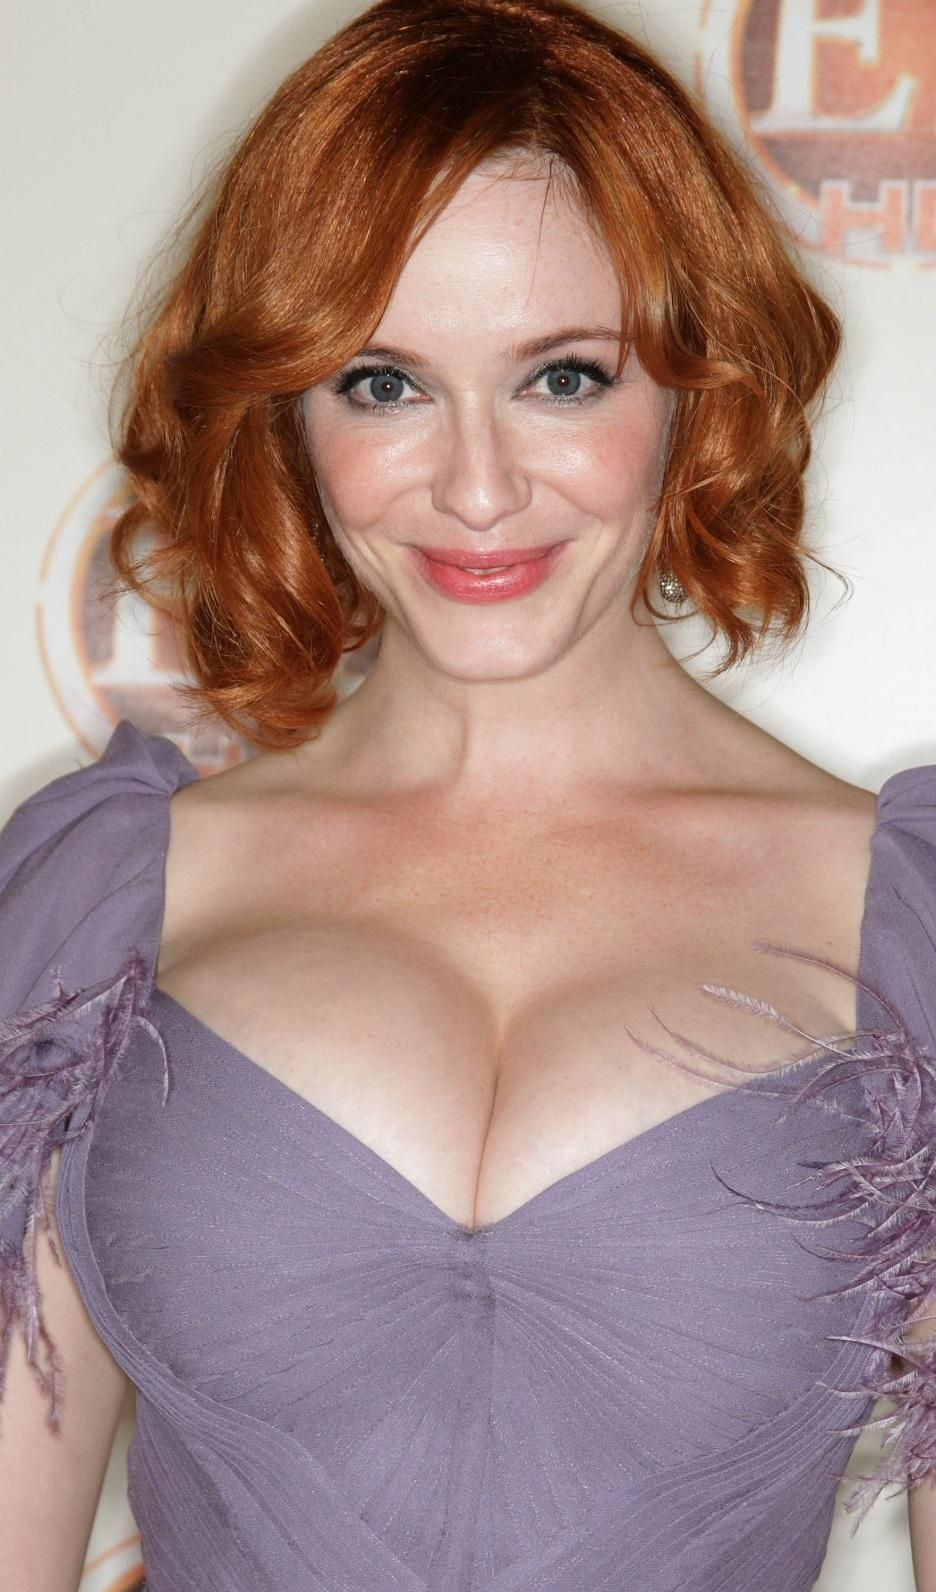 46 Photos Of Christina Hendricks In Honor Of National Cleavage Day ...